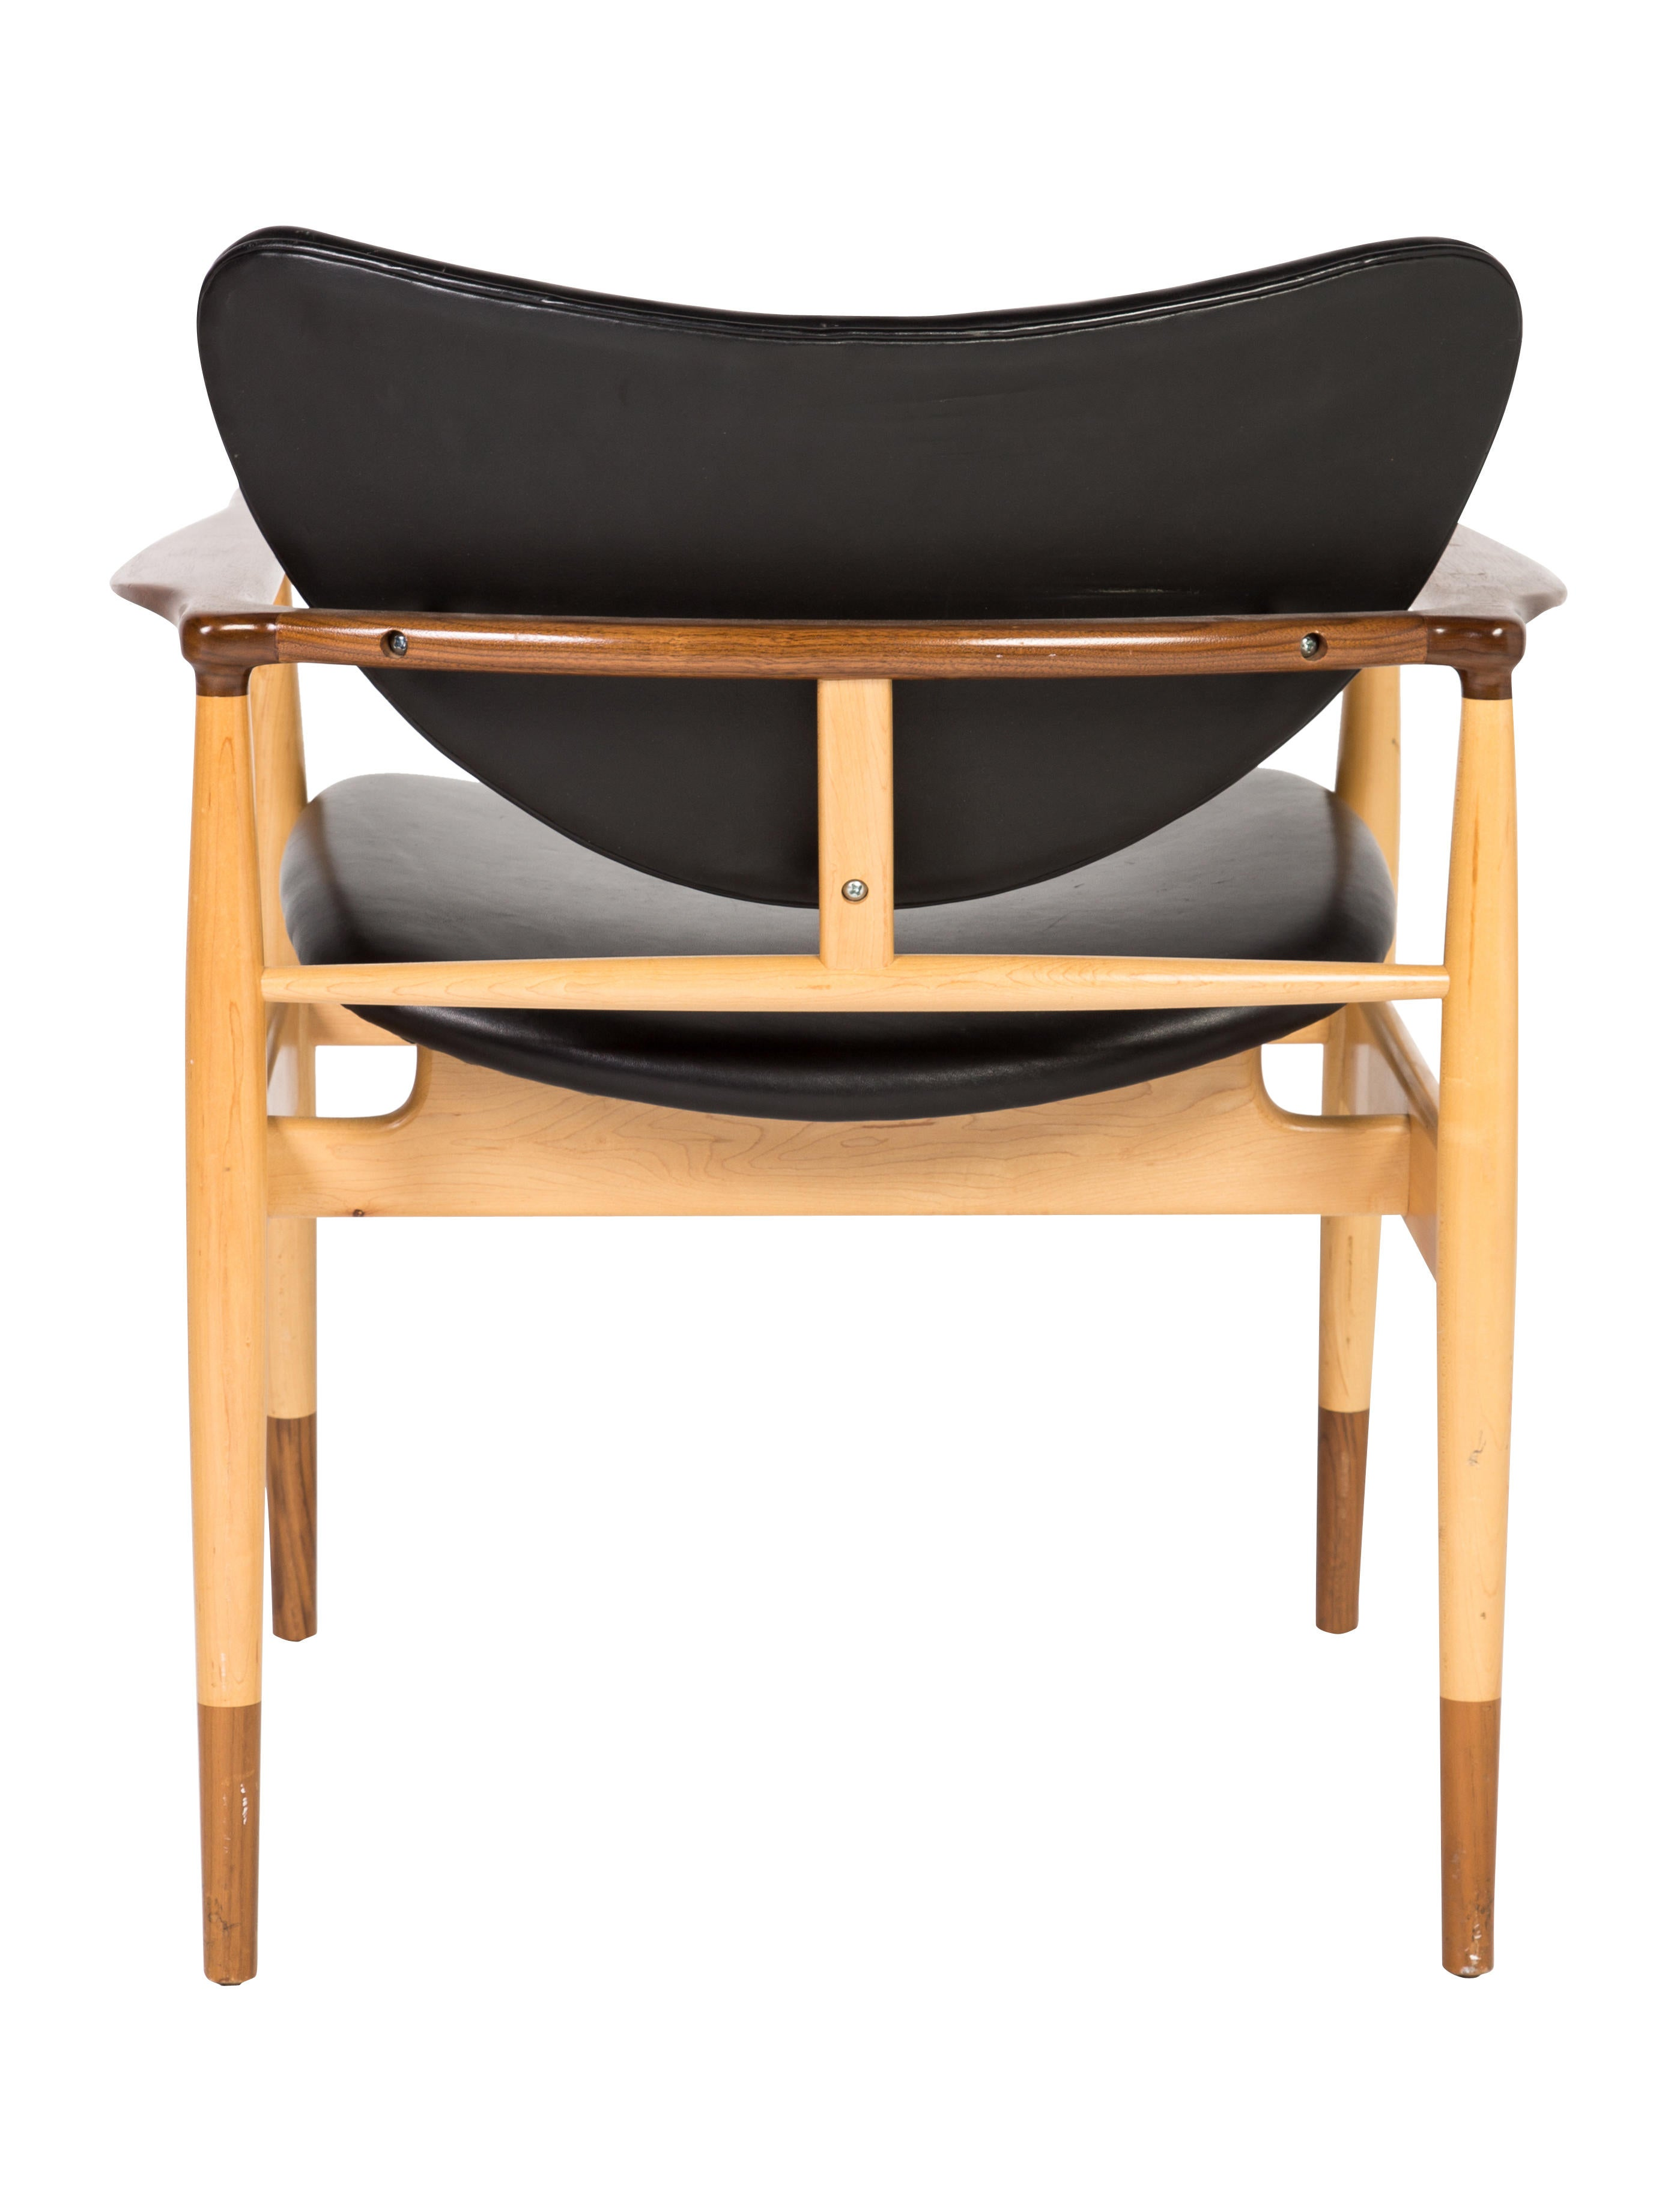 Baker Leather LJ 48 Accent Chairs Furniture BAKER20031  : BAKER200314enlarged from www.therealreal.com size 2792 x 3683 jpeg 372kB